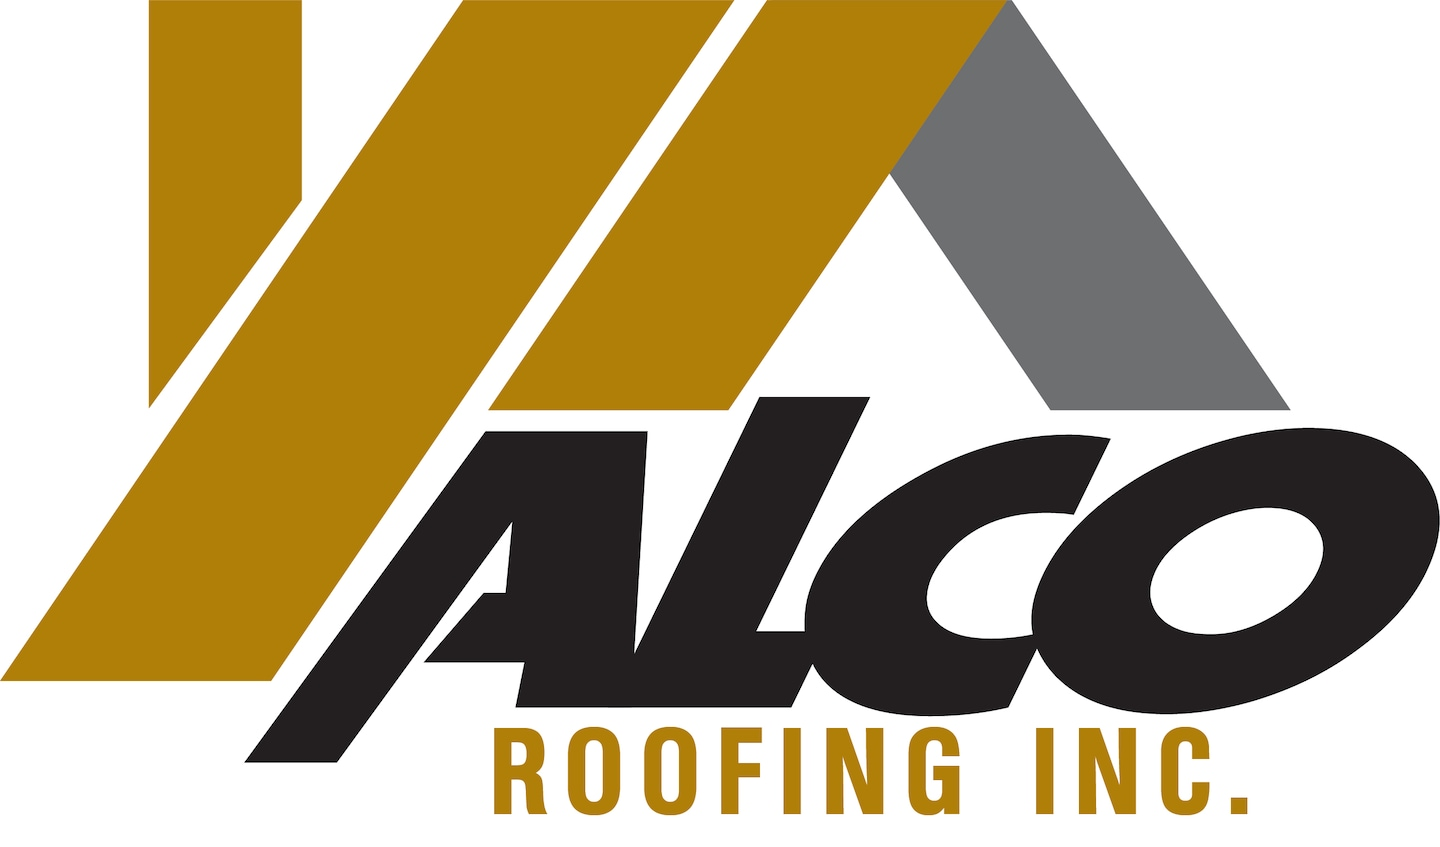 Alco Roofing Inc